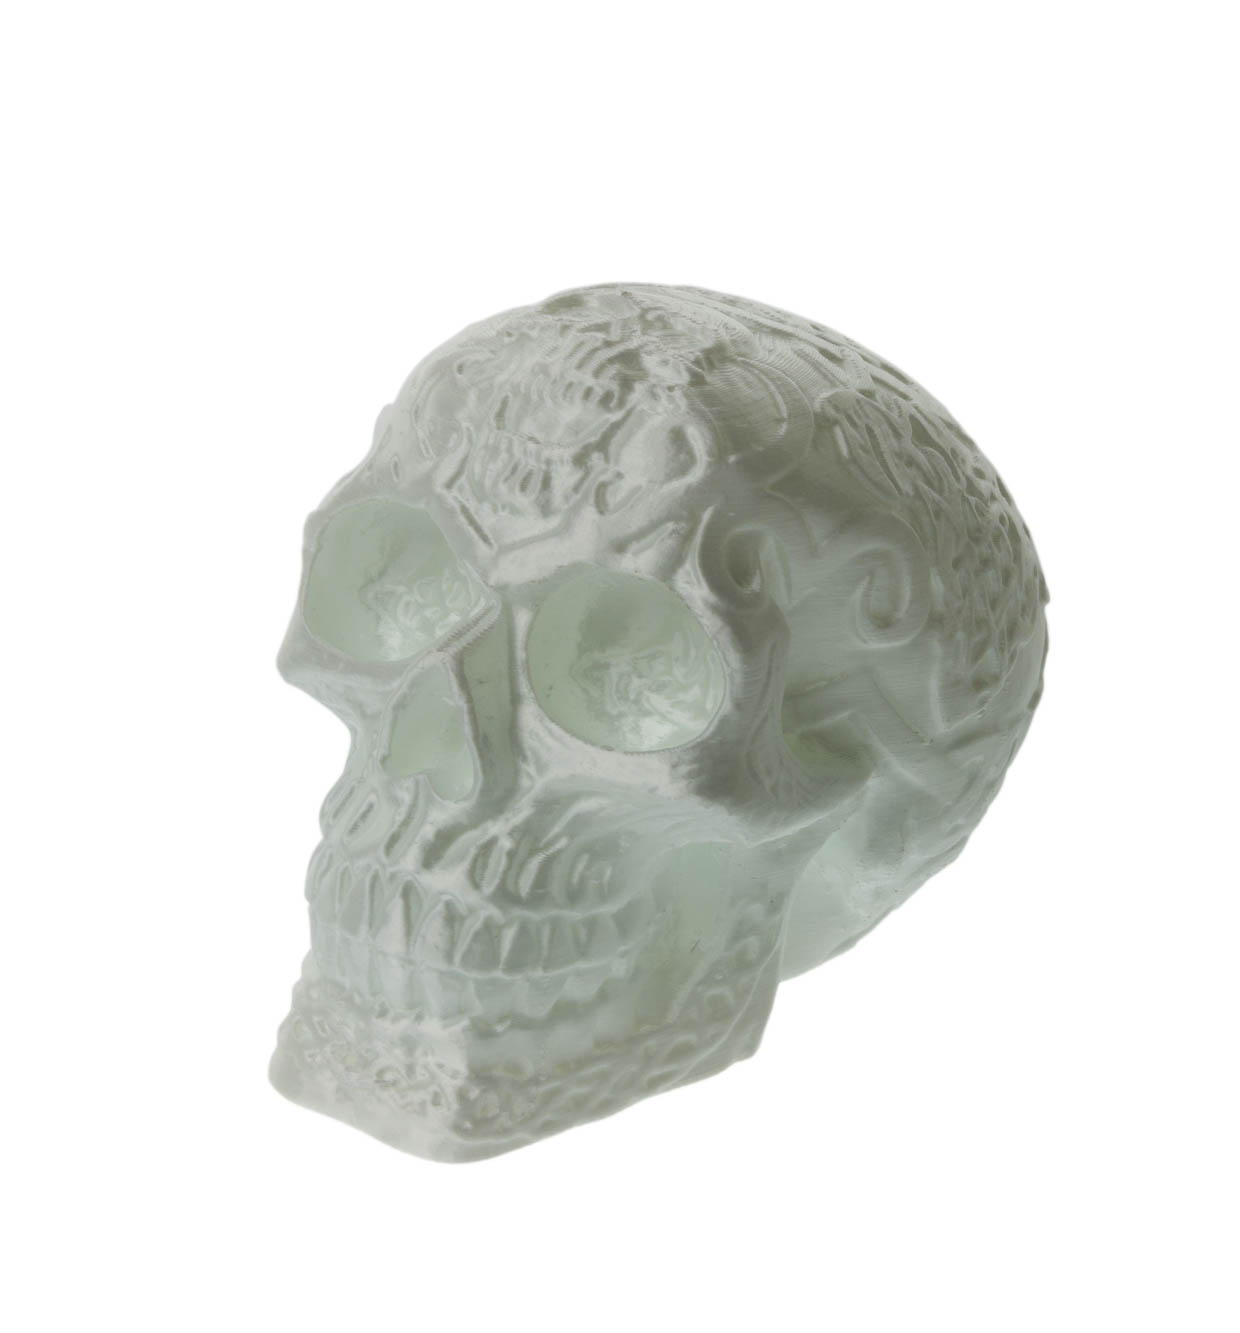 Celtic Skull support removed